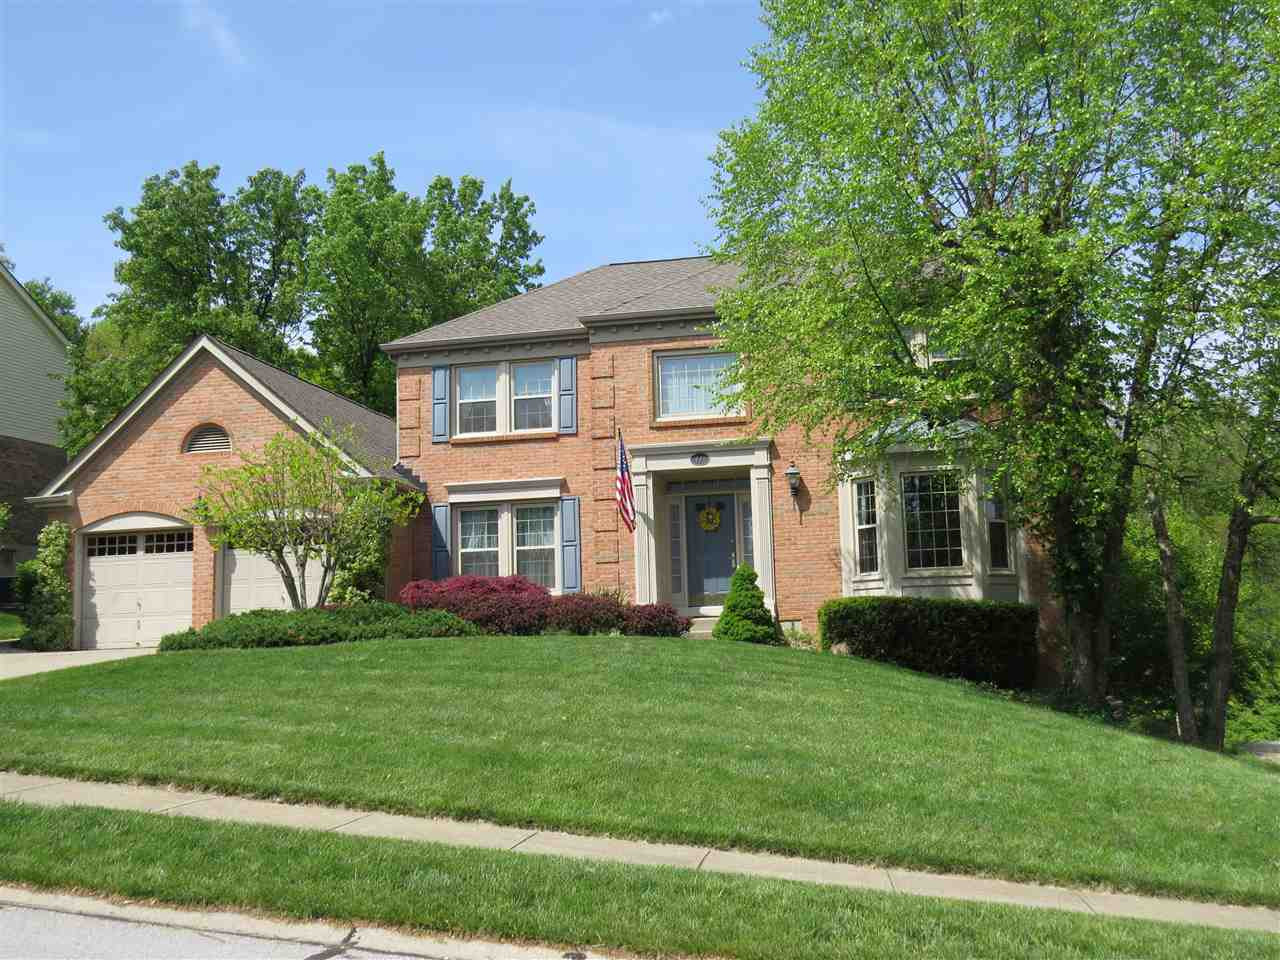 Photo 2 for 771 Twilight Dr Crescent Springs, KY 41017